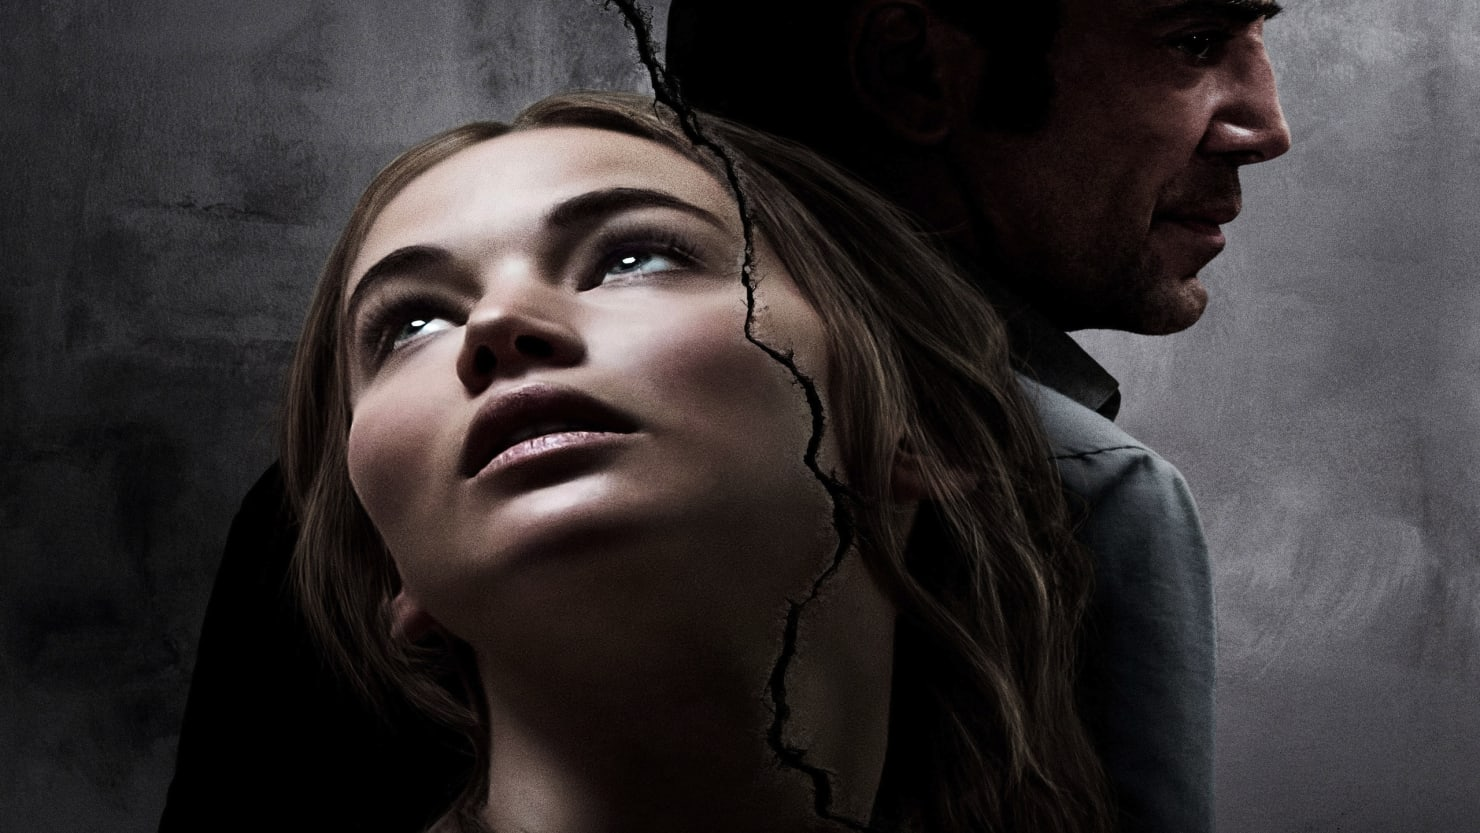 The Horror of 'mother!', the Most Polarizing Movie of the Year